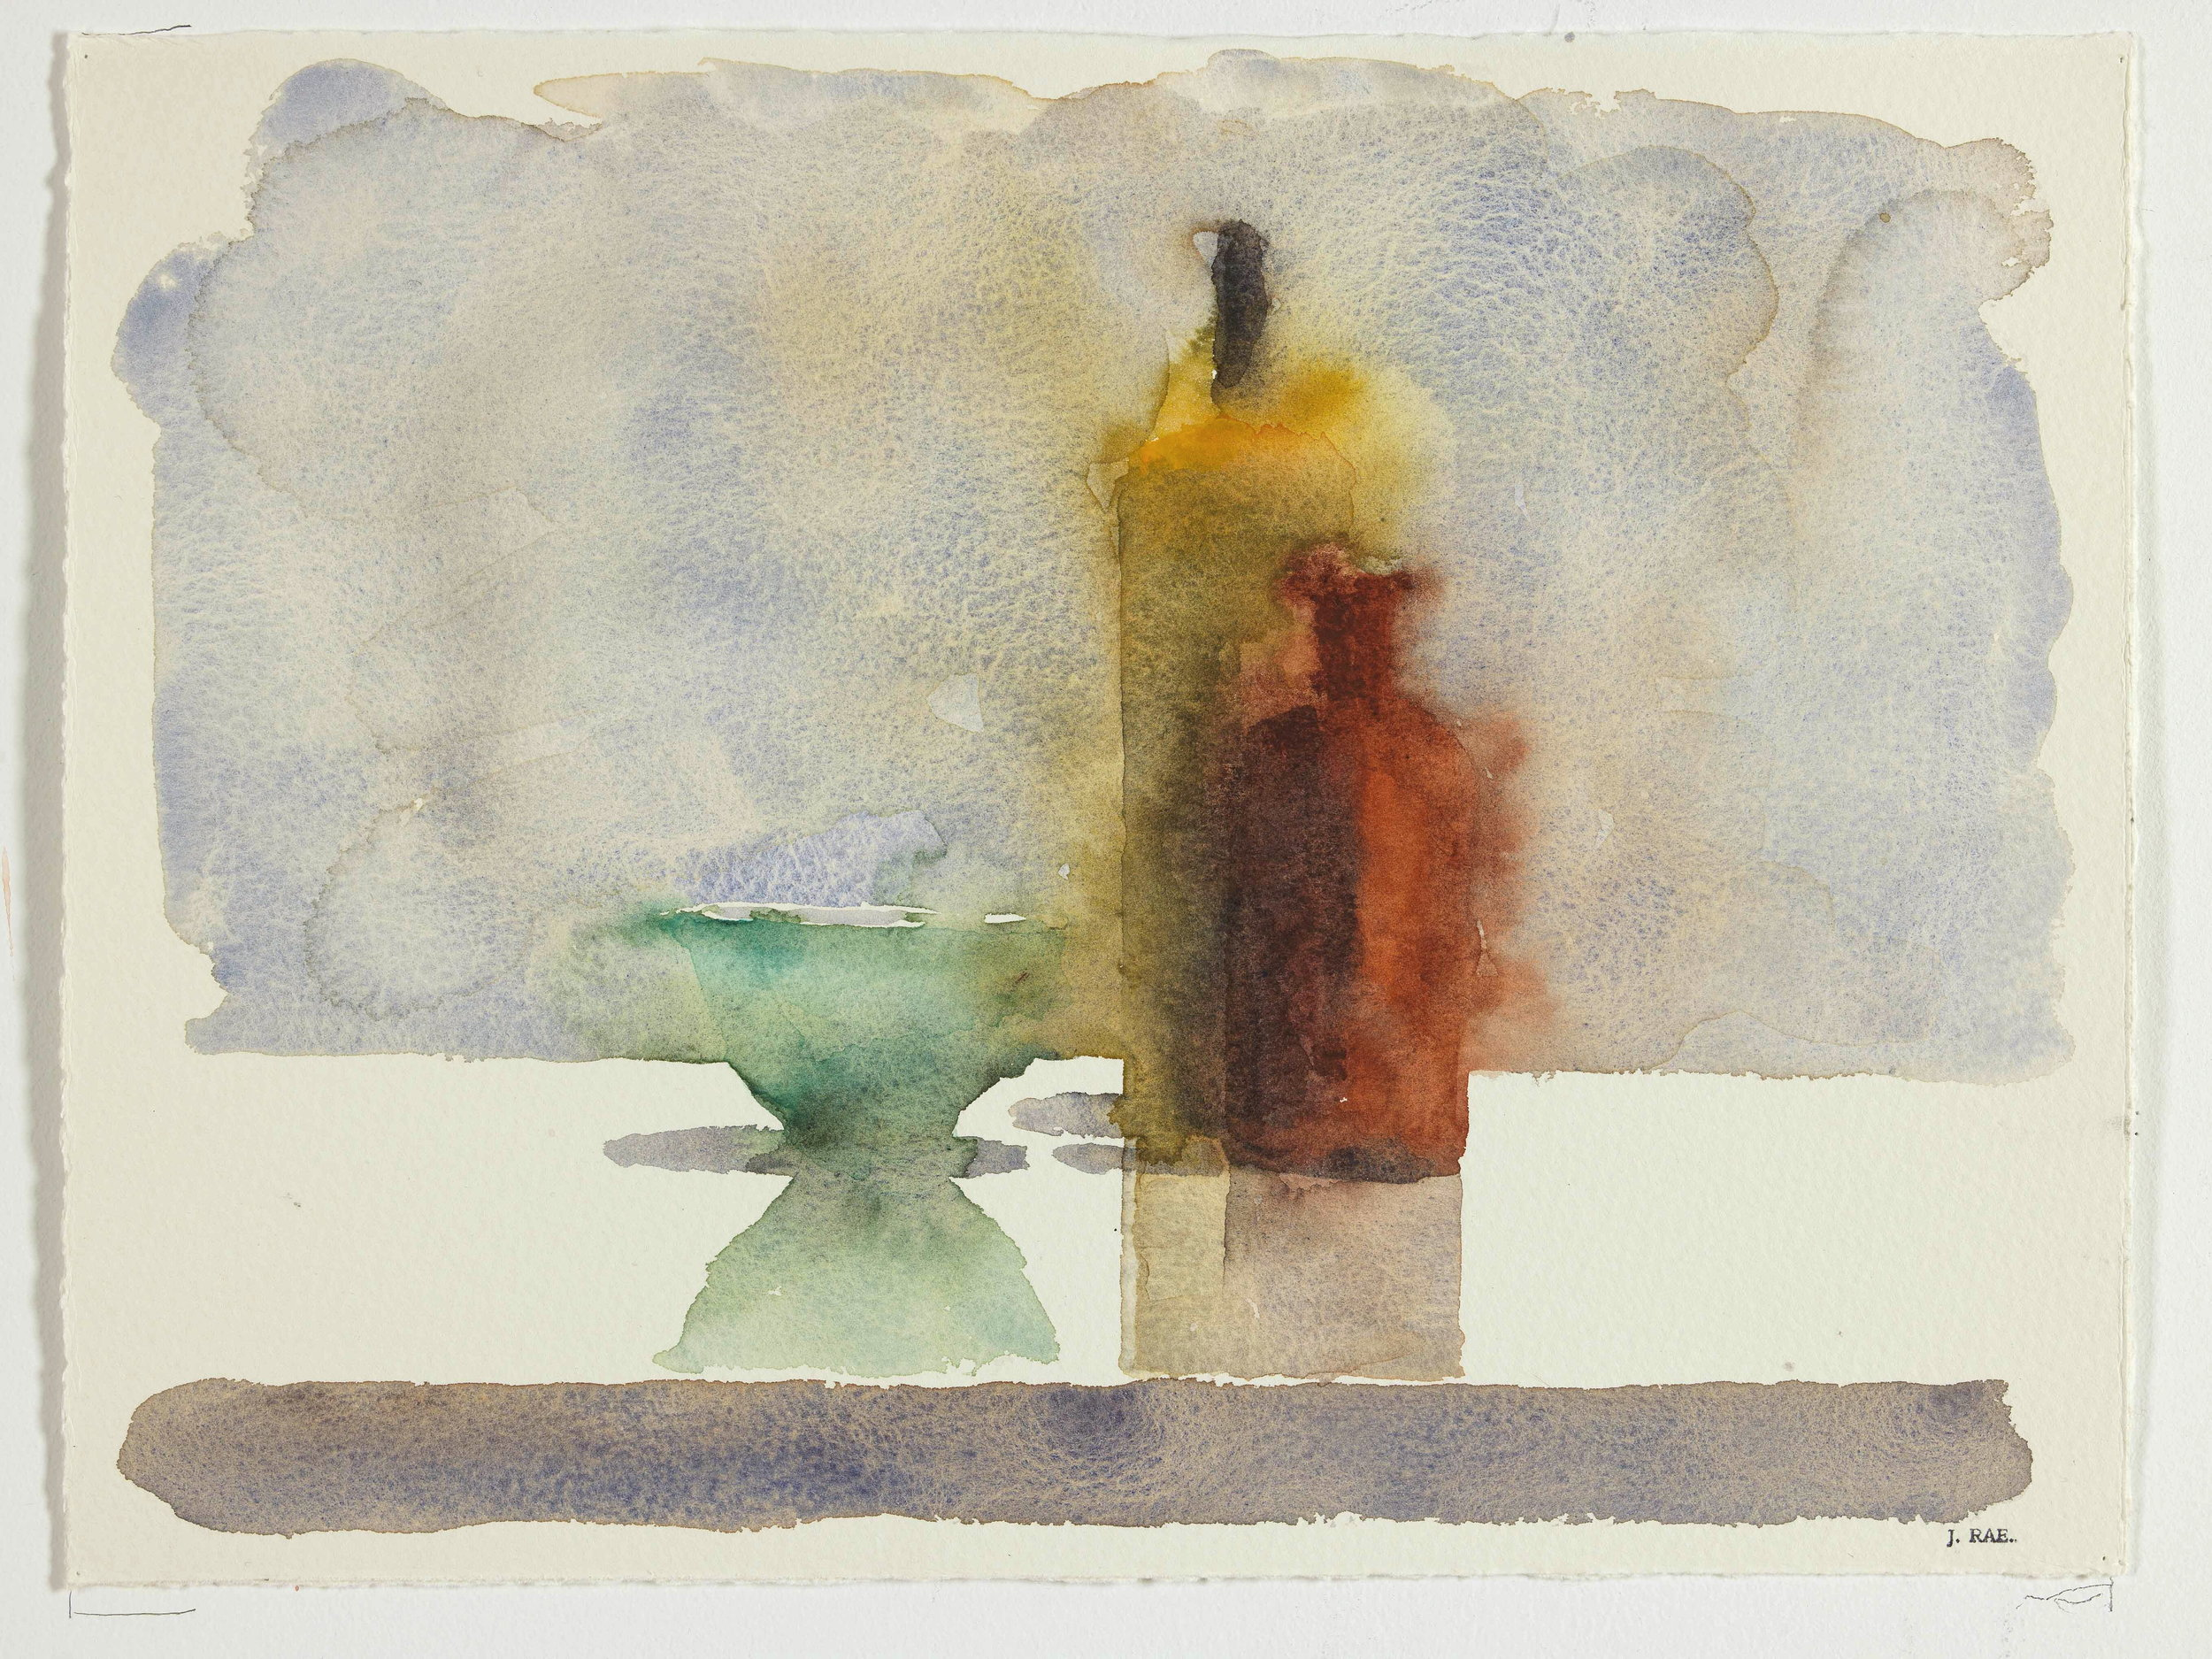 WCSL119, 2010, water colour on paper, 38 x 29cm.